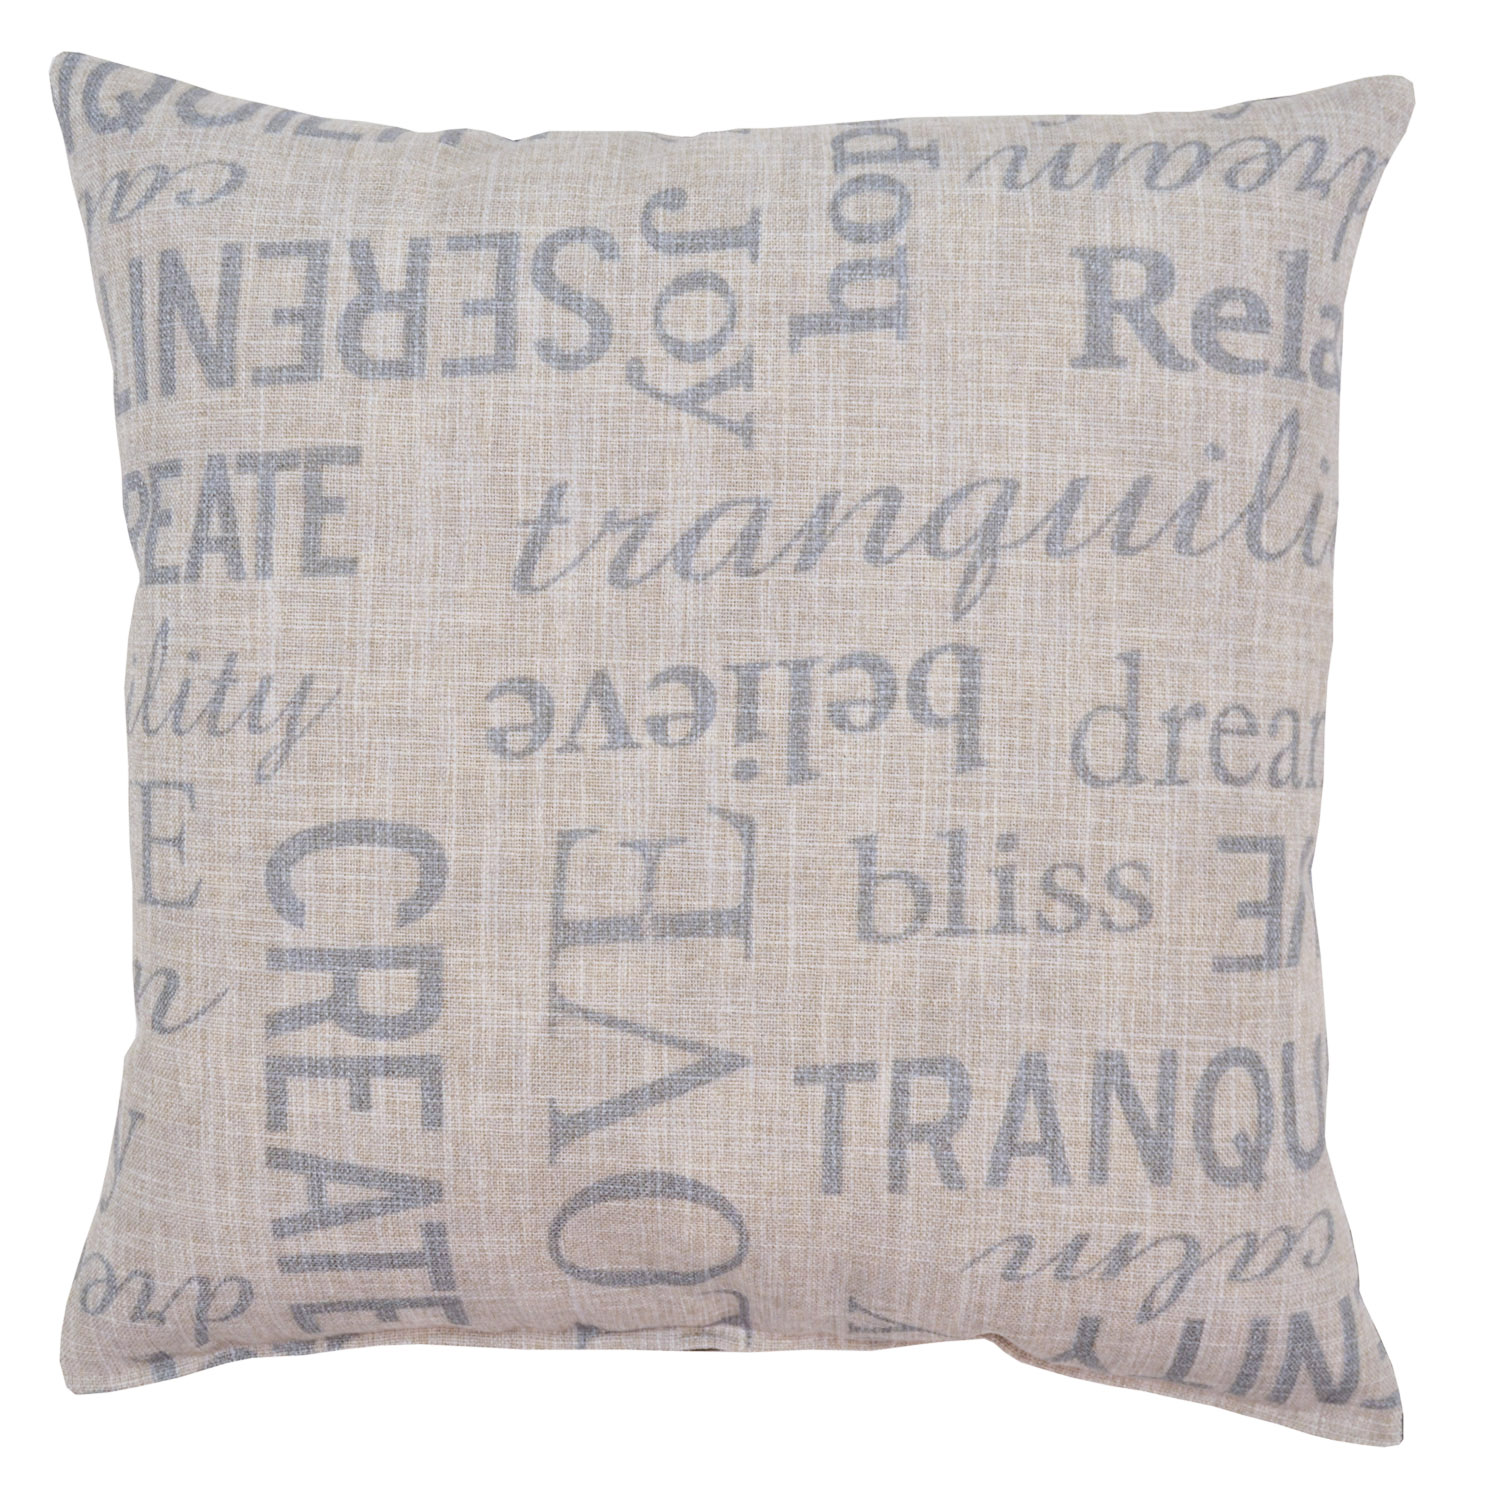 Gray Printed Letters Pillow